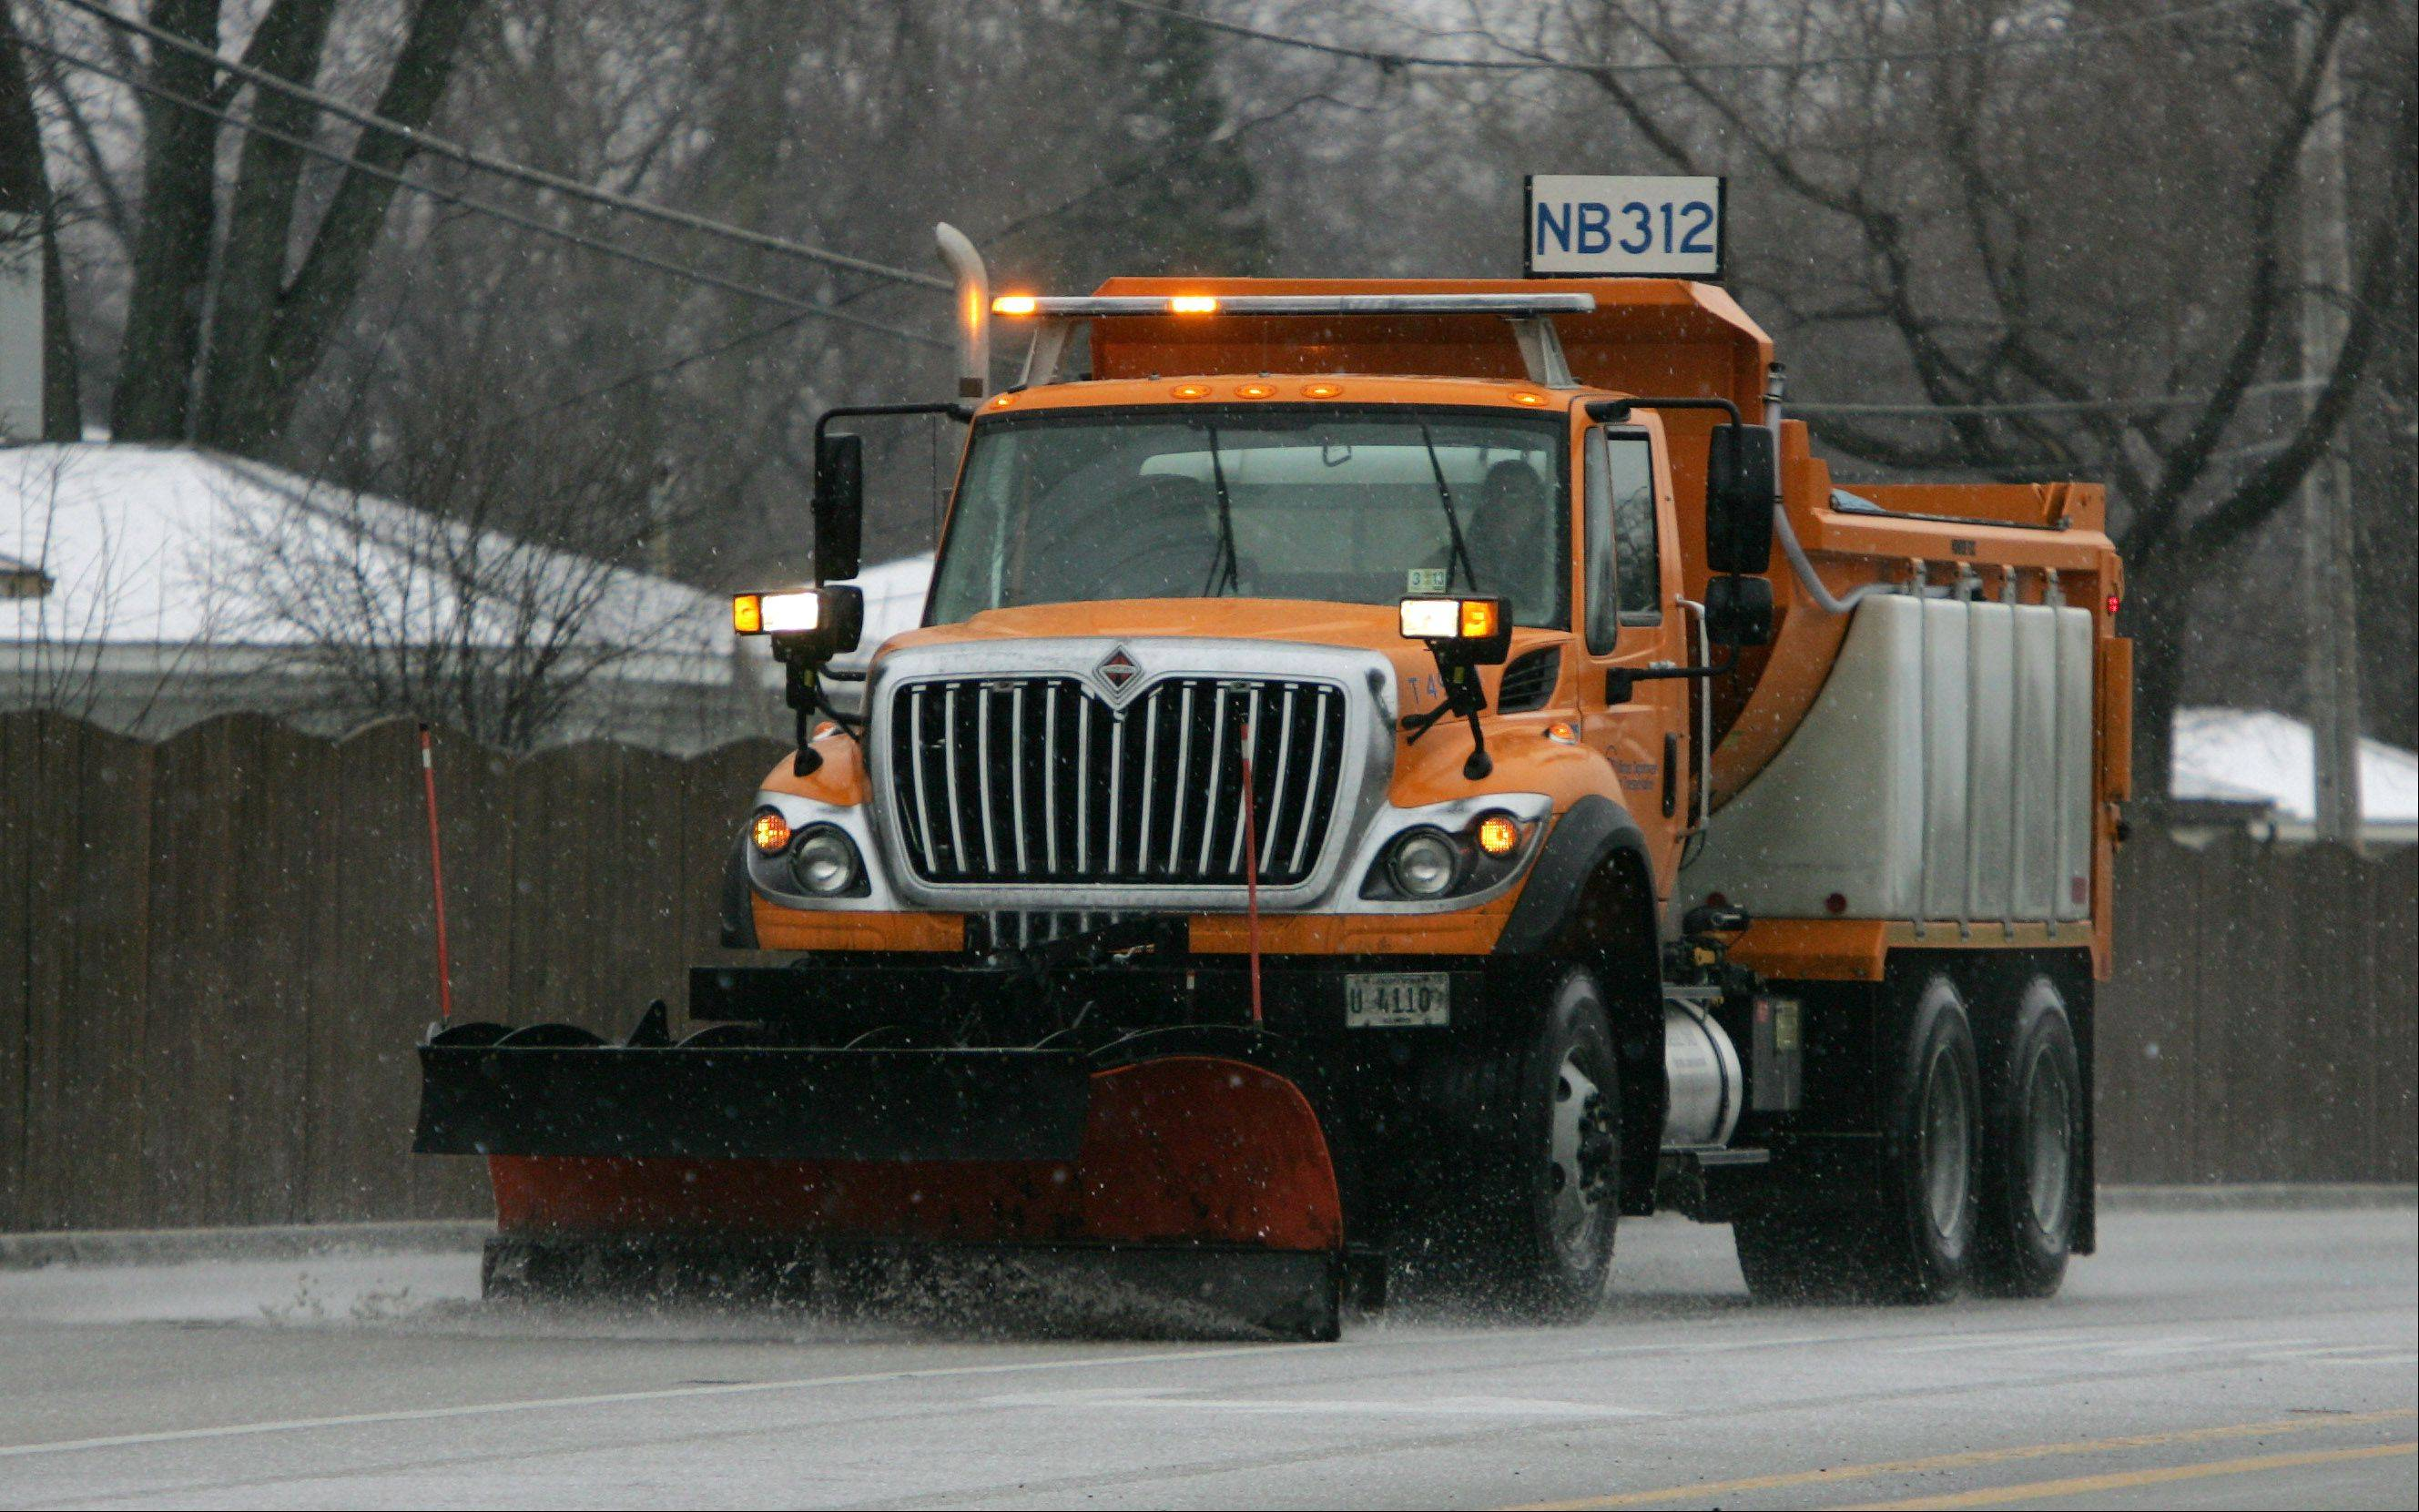 An Illinois Department of Transportation truck dumps salt along Elmhurst Road in Wheeling Sunday as an ice storm hit the area causing difficult driving conditions. Several flight delays were reported at O�Hare International Airport because of the weather.